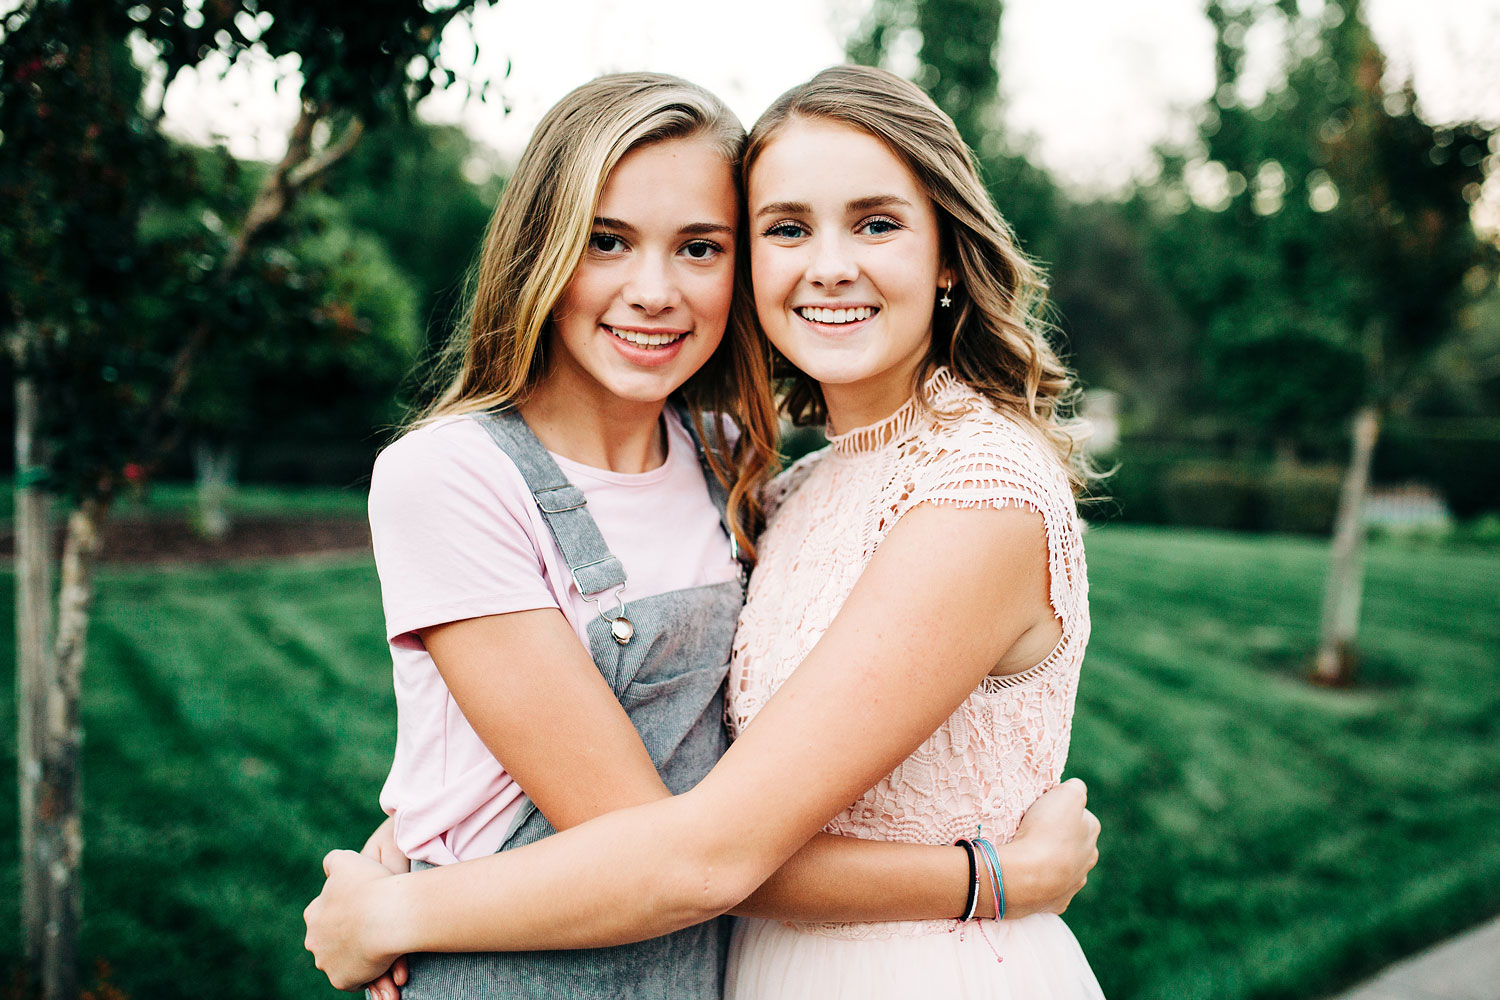 Two cousins happily embrace during an extended family photo shoot with Amy Wright Photography in Northern California.